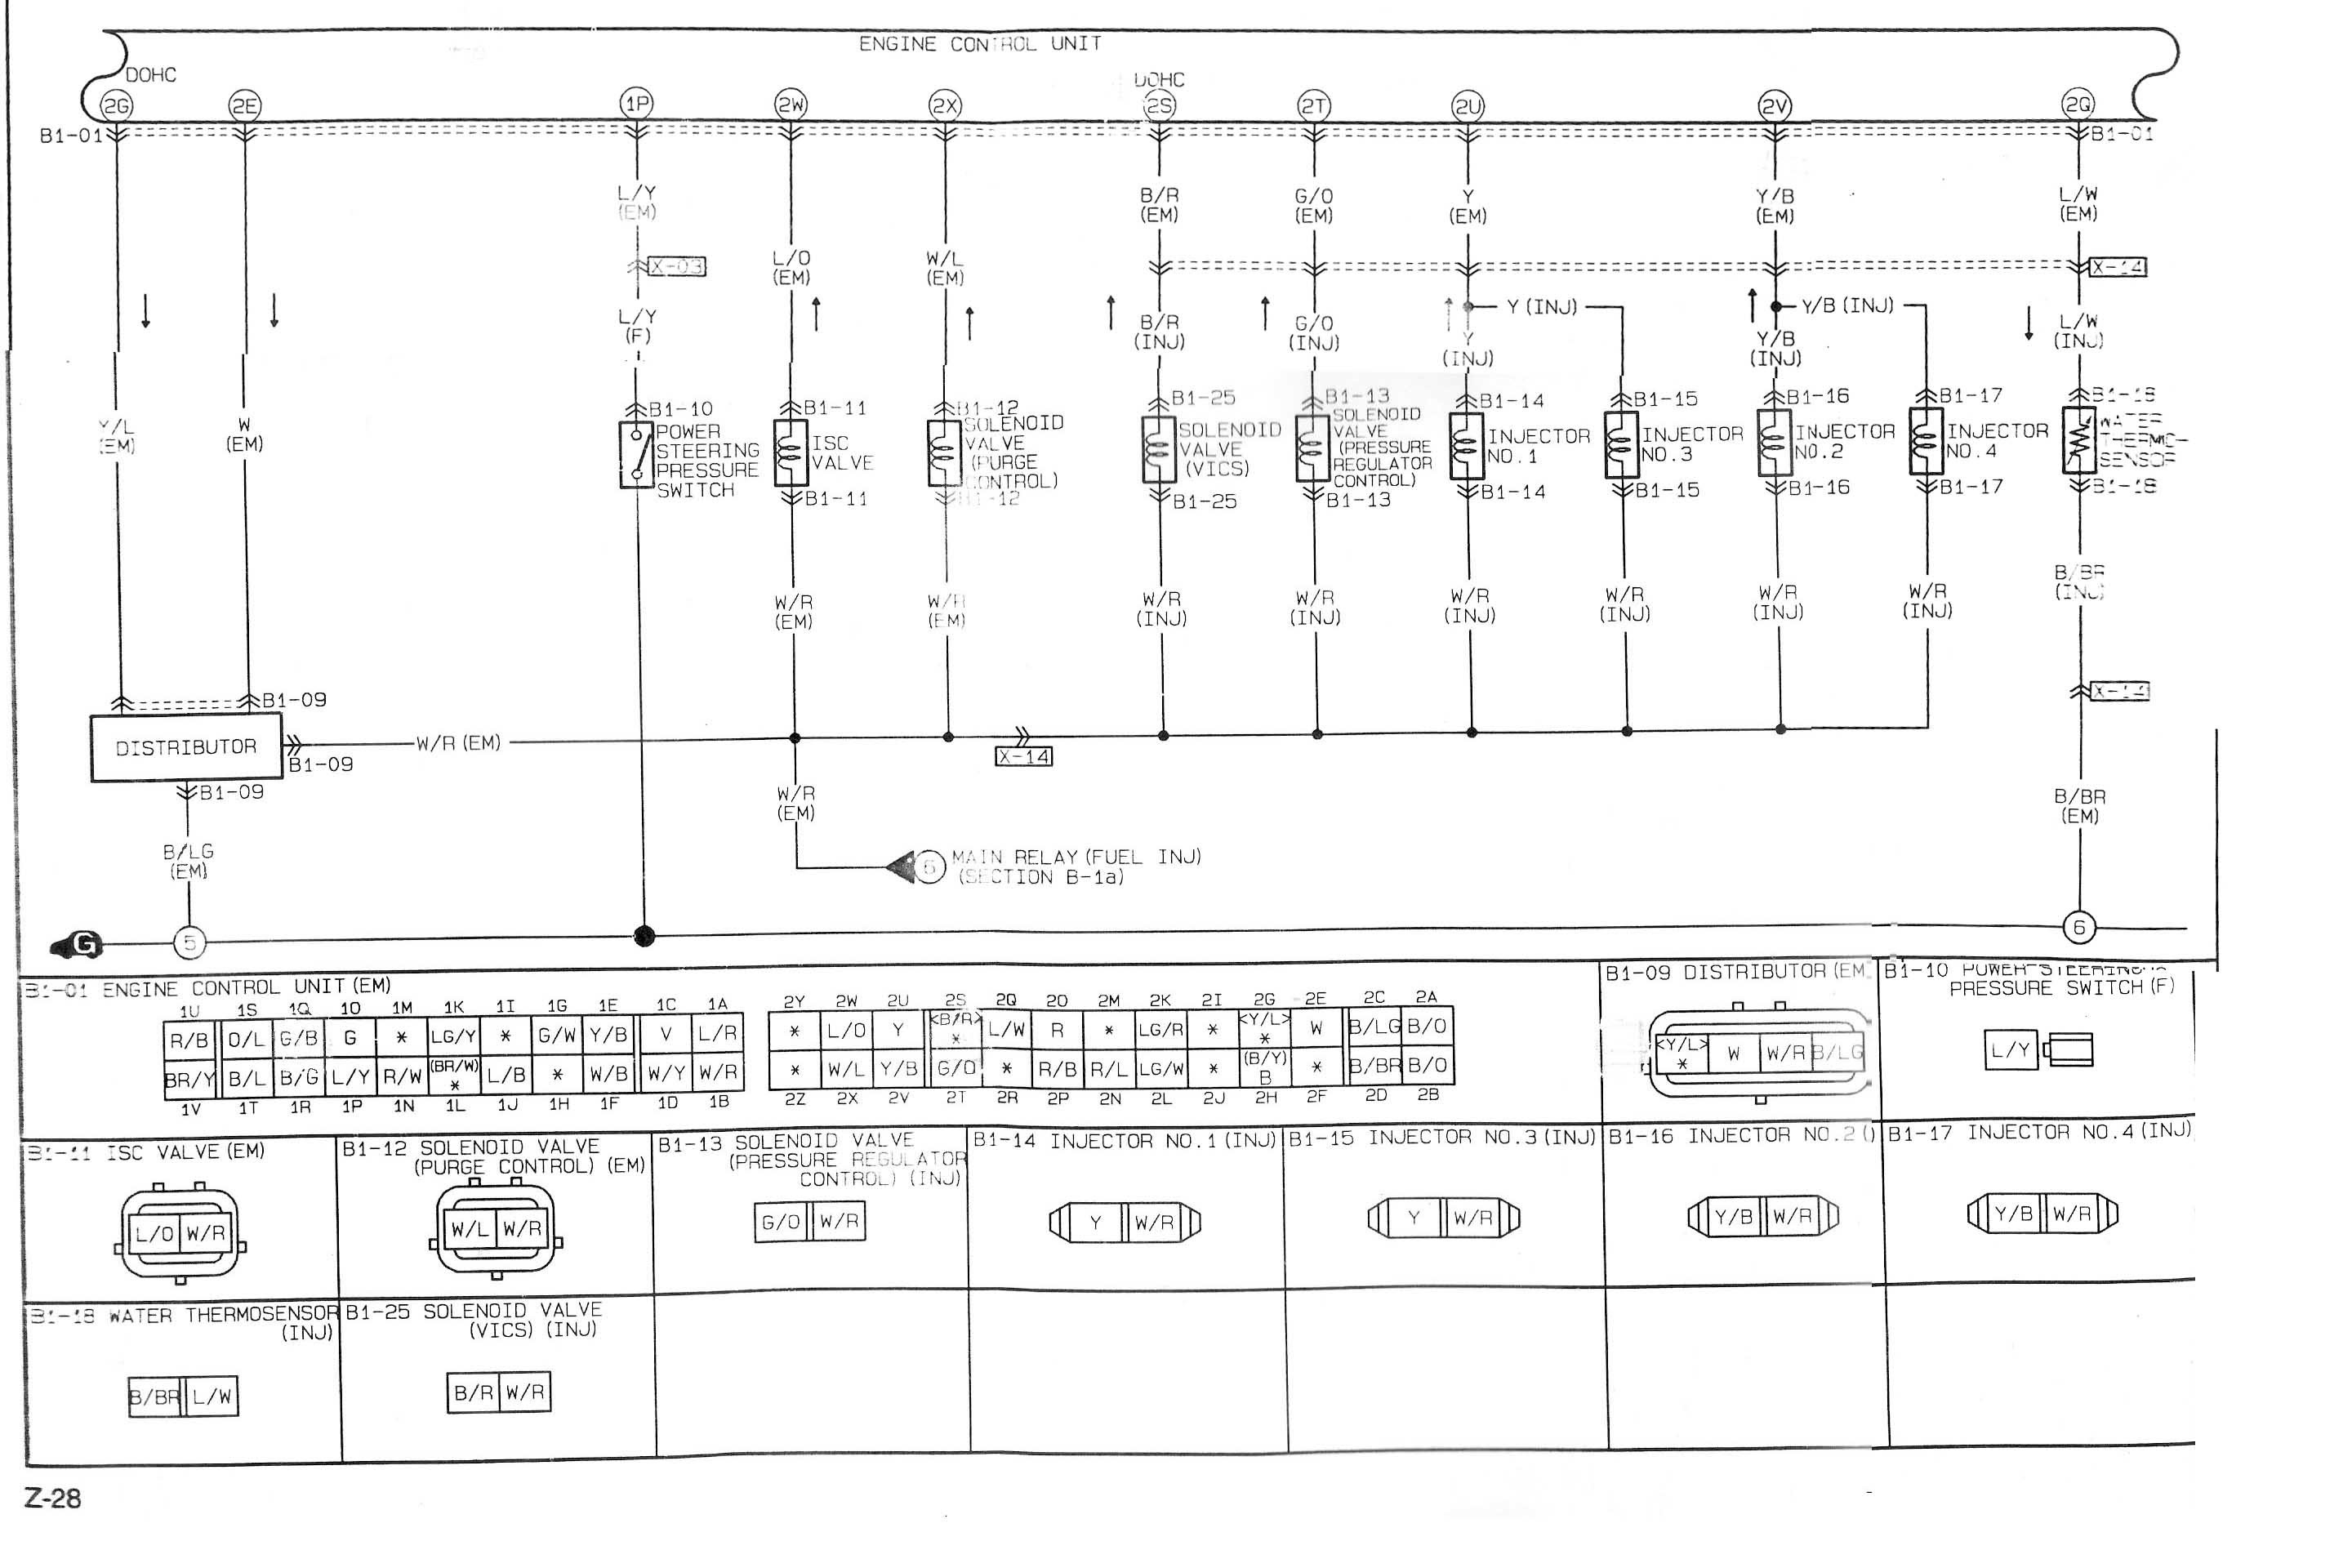 Mazda Protege Diagram Wiring Schematic | schematic and ...